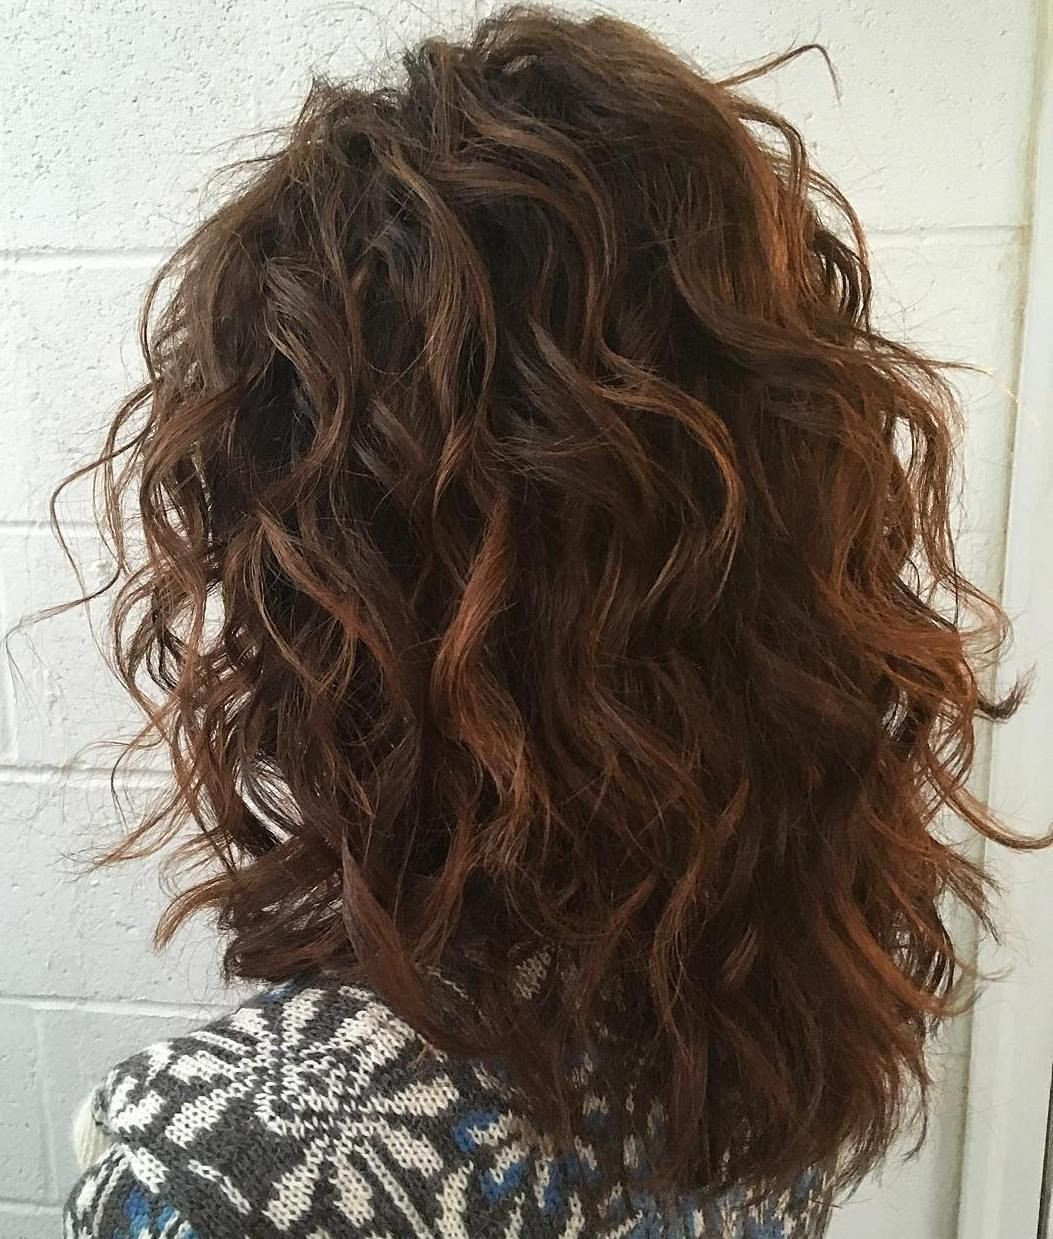 Semi Curly Long Haircuts 50 Most Magnetizing Hairstyles For Thick Lamidieu Awesome Semi Curly Long H In 2020 Thick Wavy Hair Natural Wavy Hair Haircut For Thick Hair